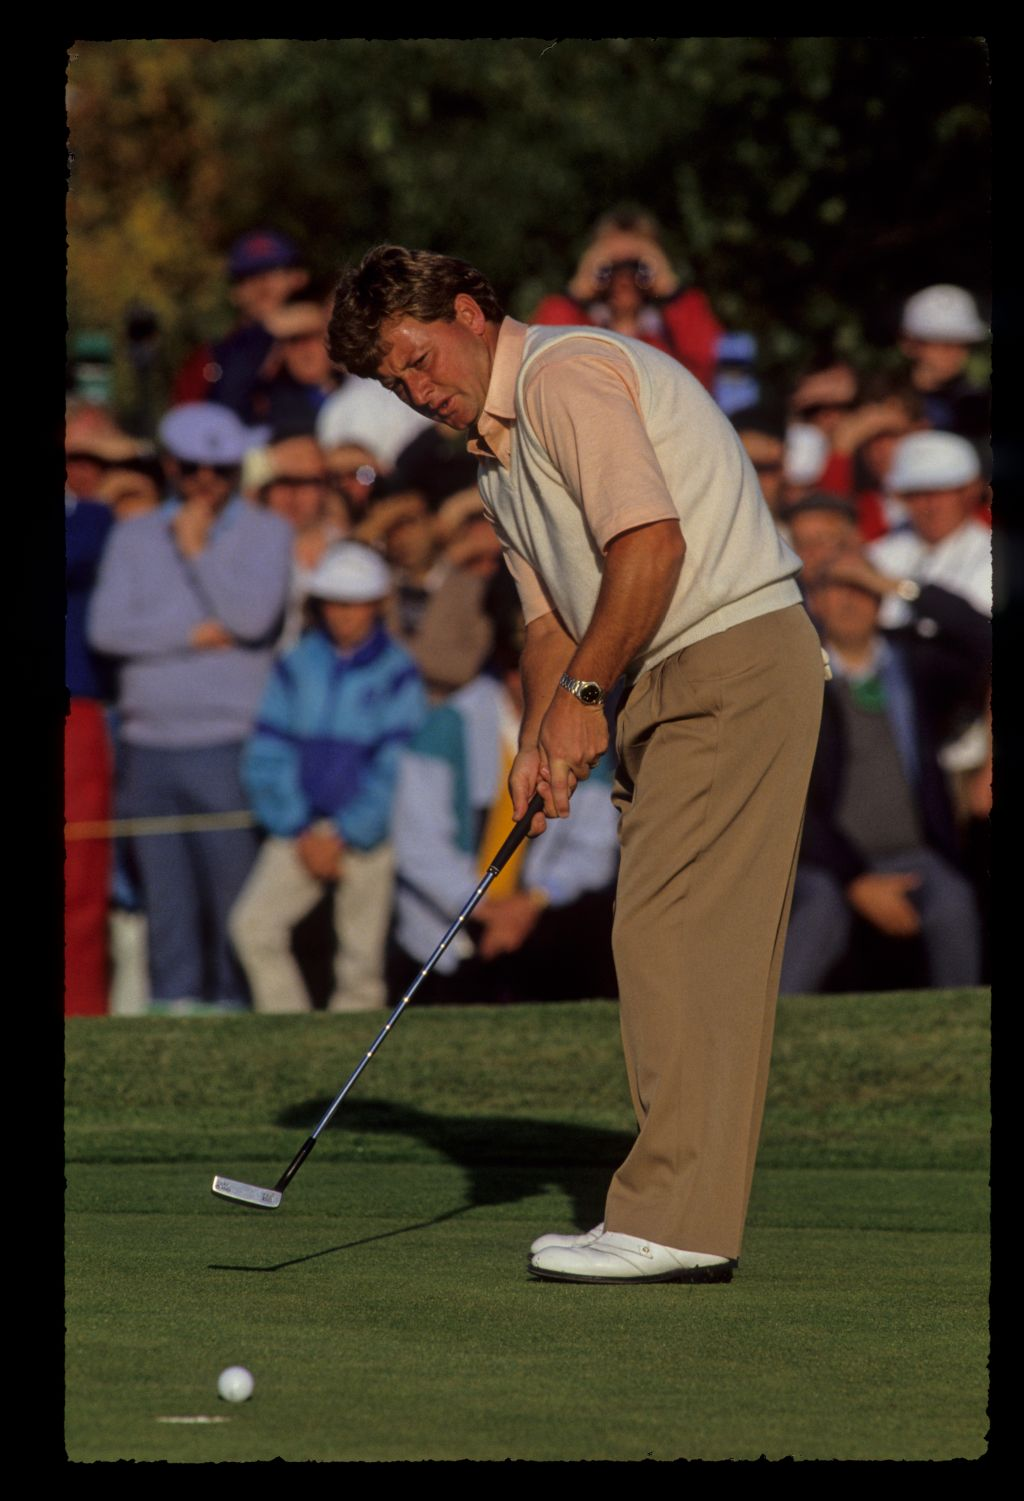 Ian Woosnam waiting for his putt to drop at the 1989 Ryder Cup